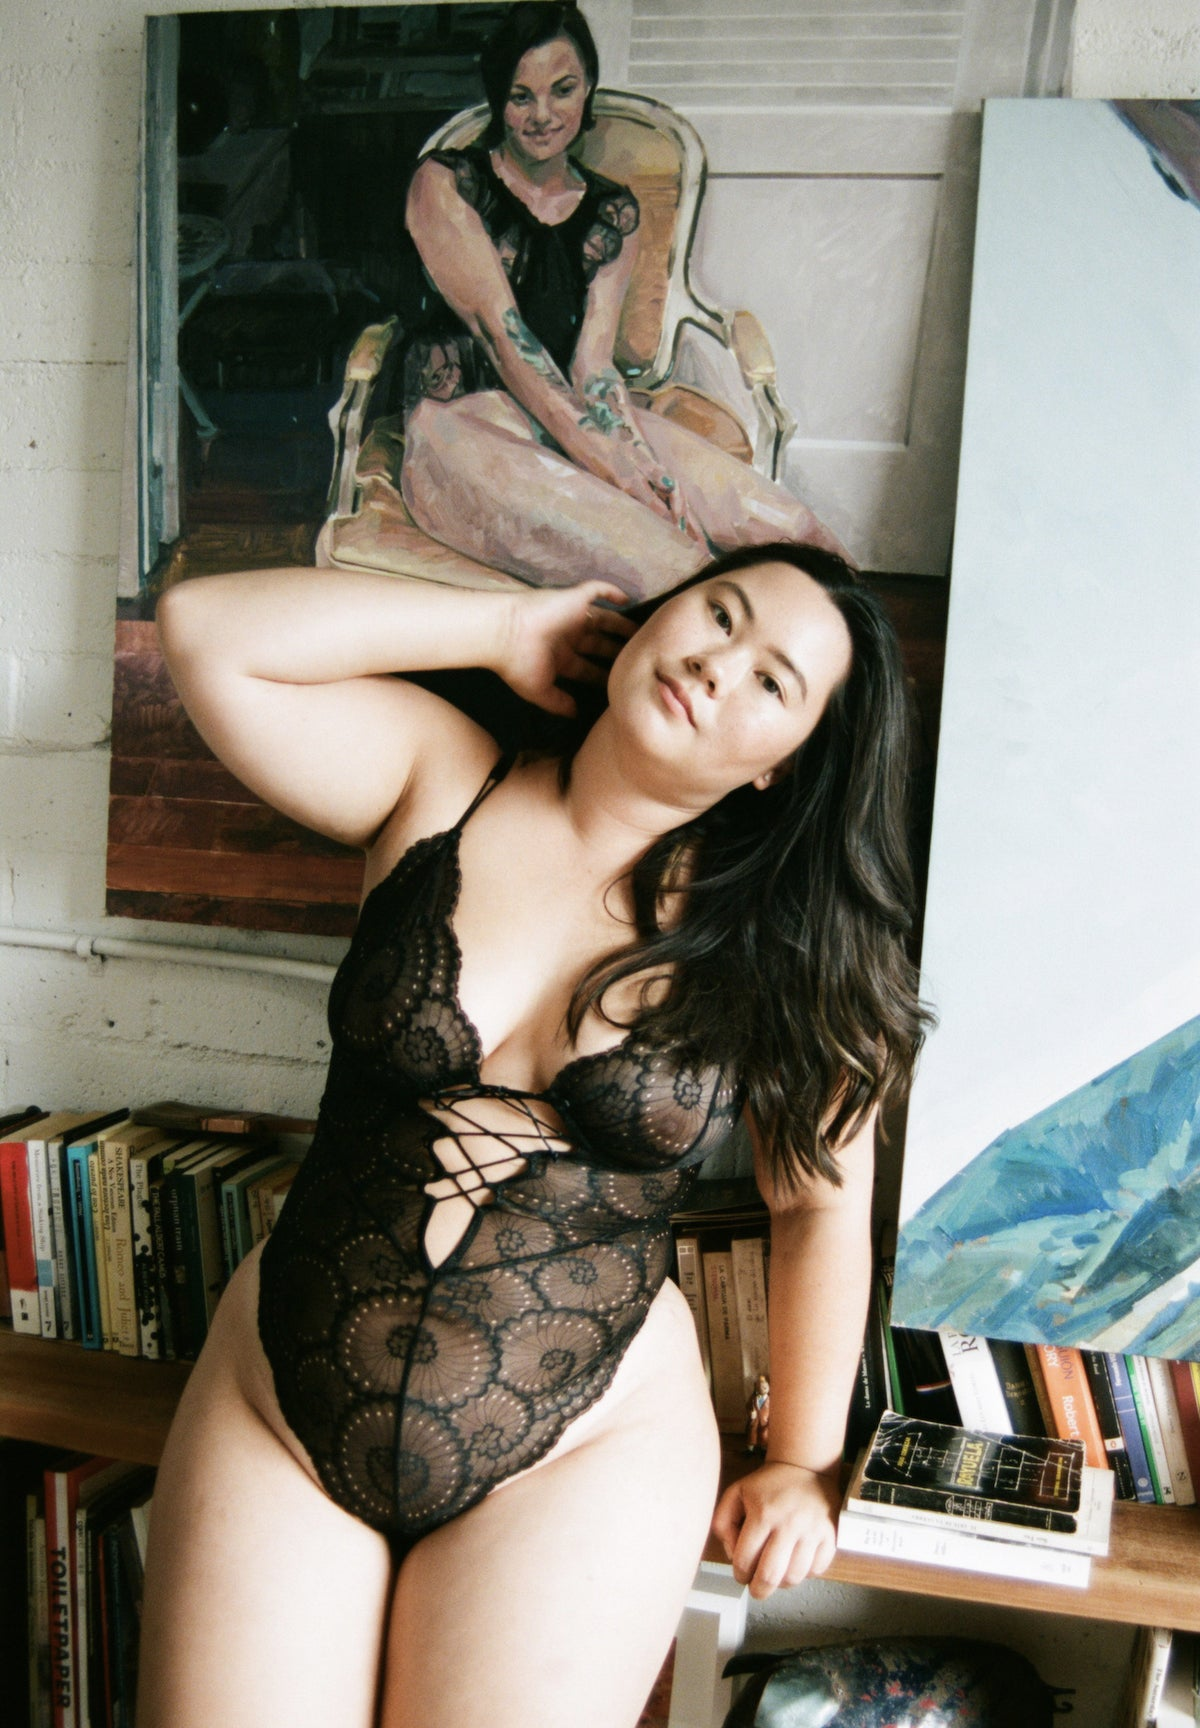 The Steamiest, Sexiest Gifts To Turn Your Lover On